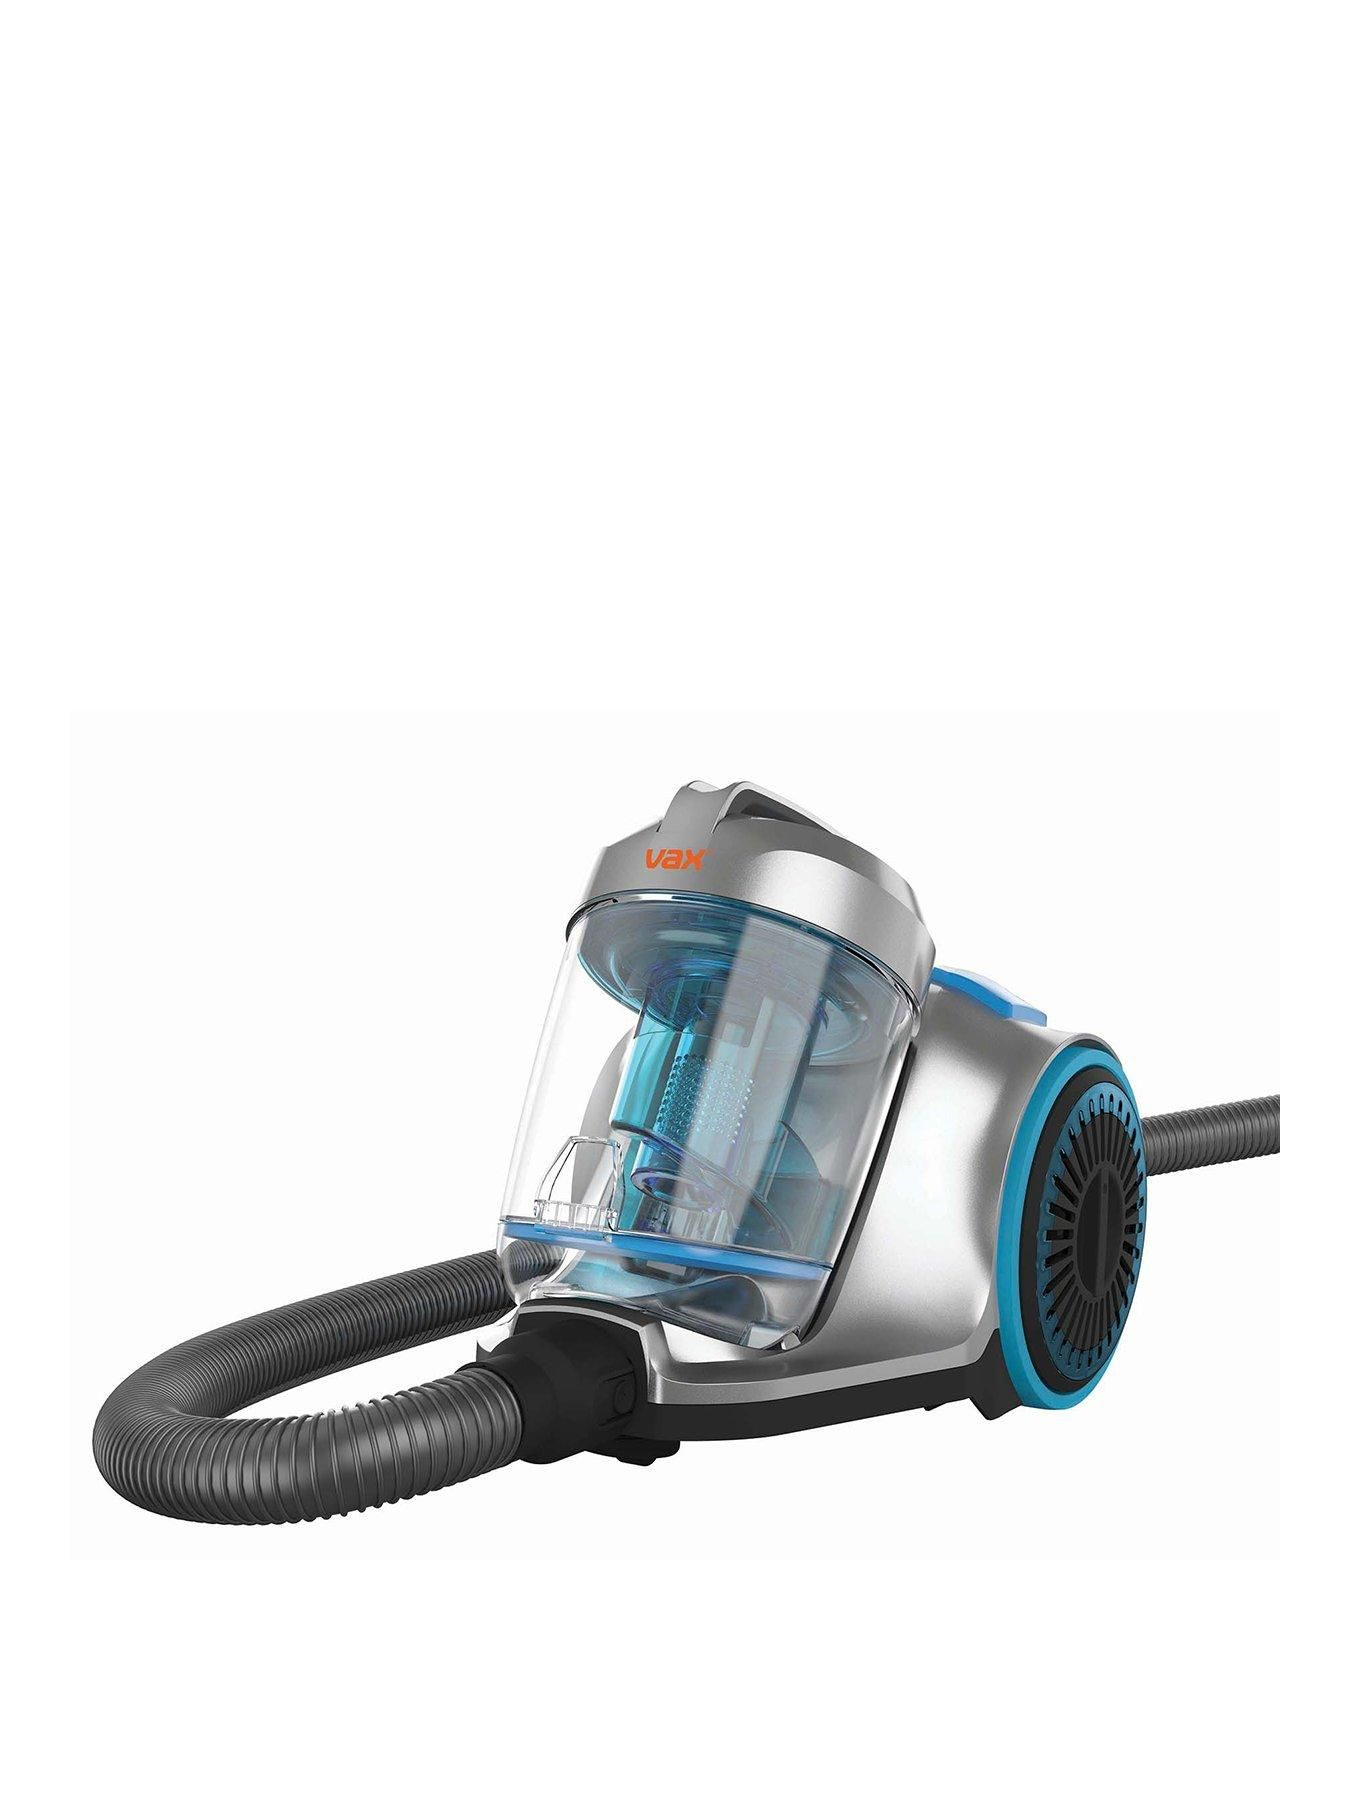 Vax Pick Up Pet CVRAV013 vacuum cleaner